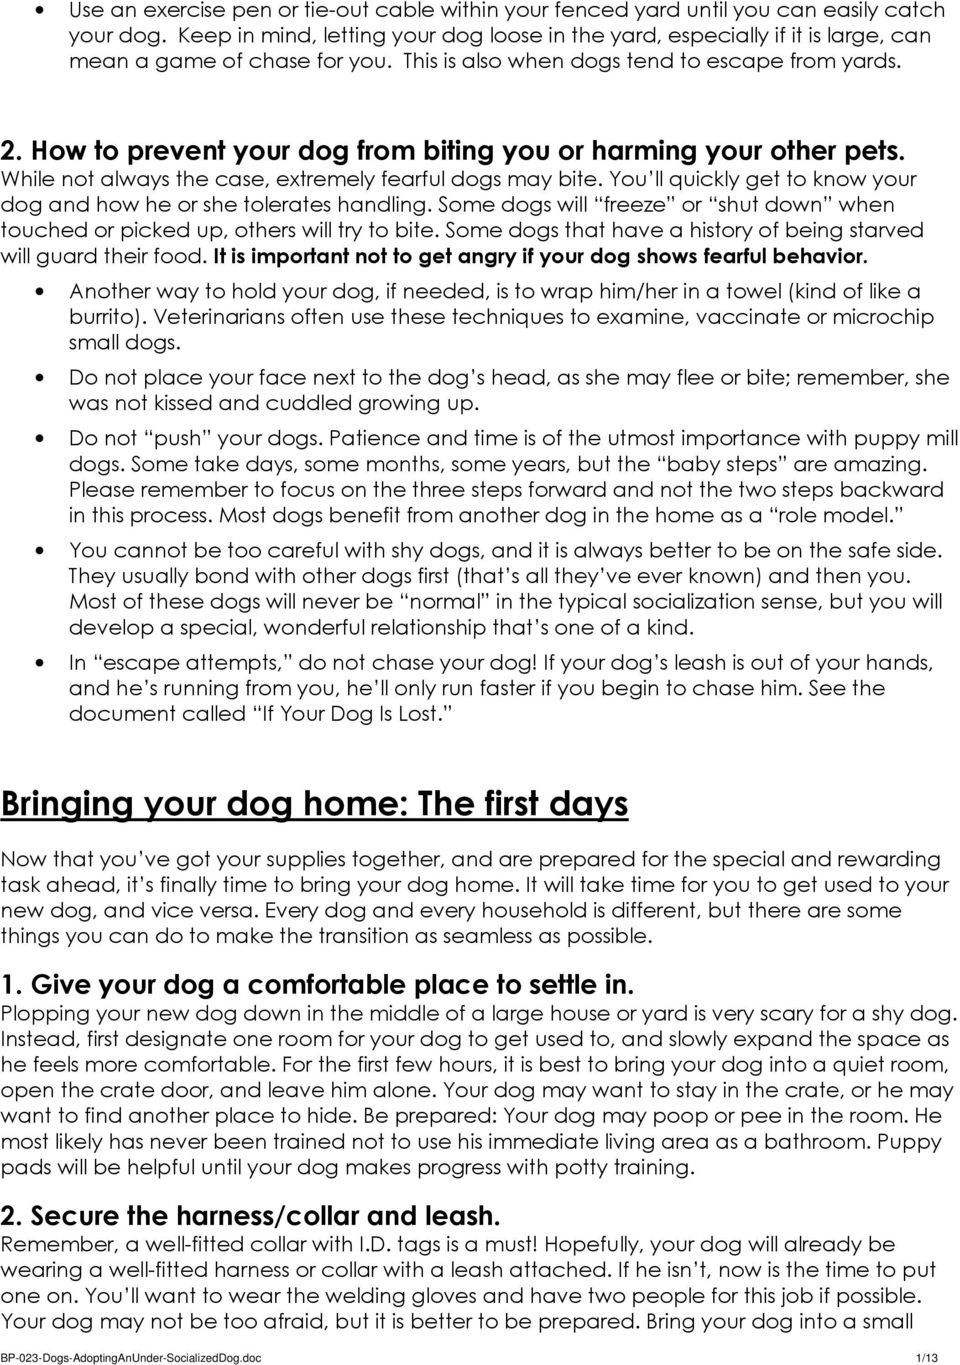 How to prevent your dog from biting you or harming your other pets. While not always the case, extremely fearful dogs may bite.